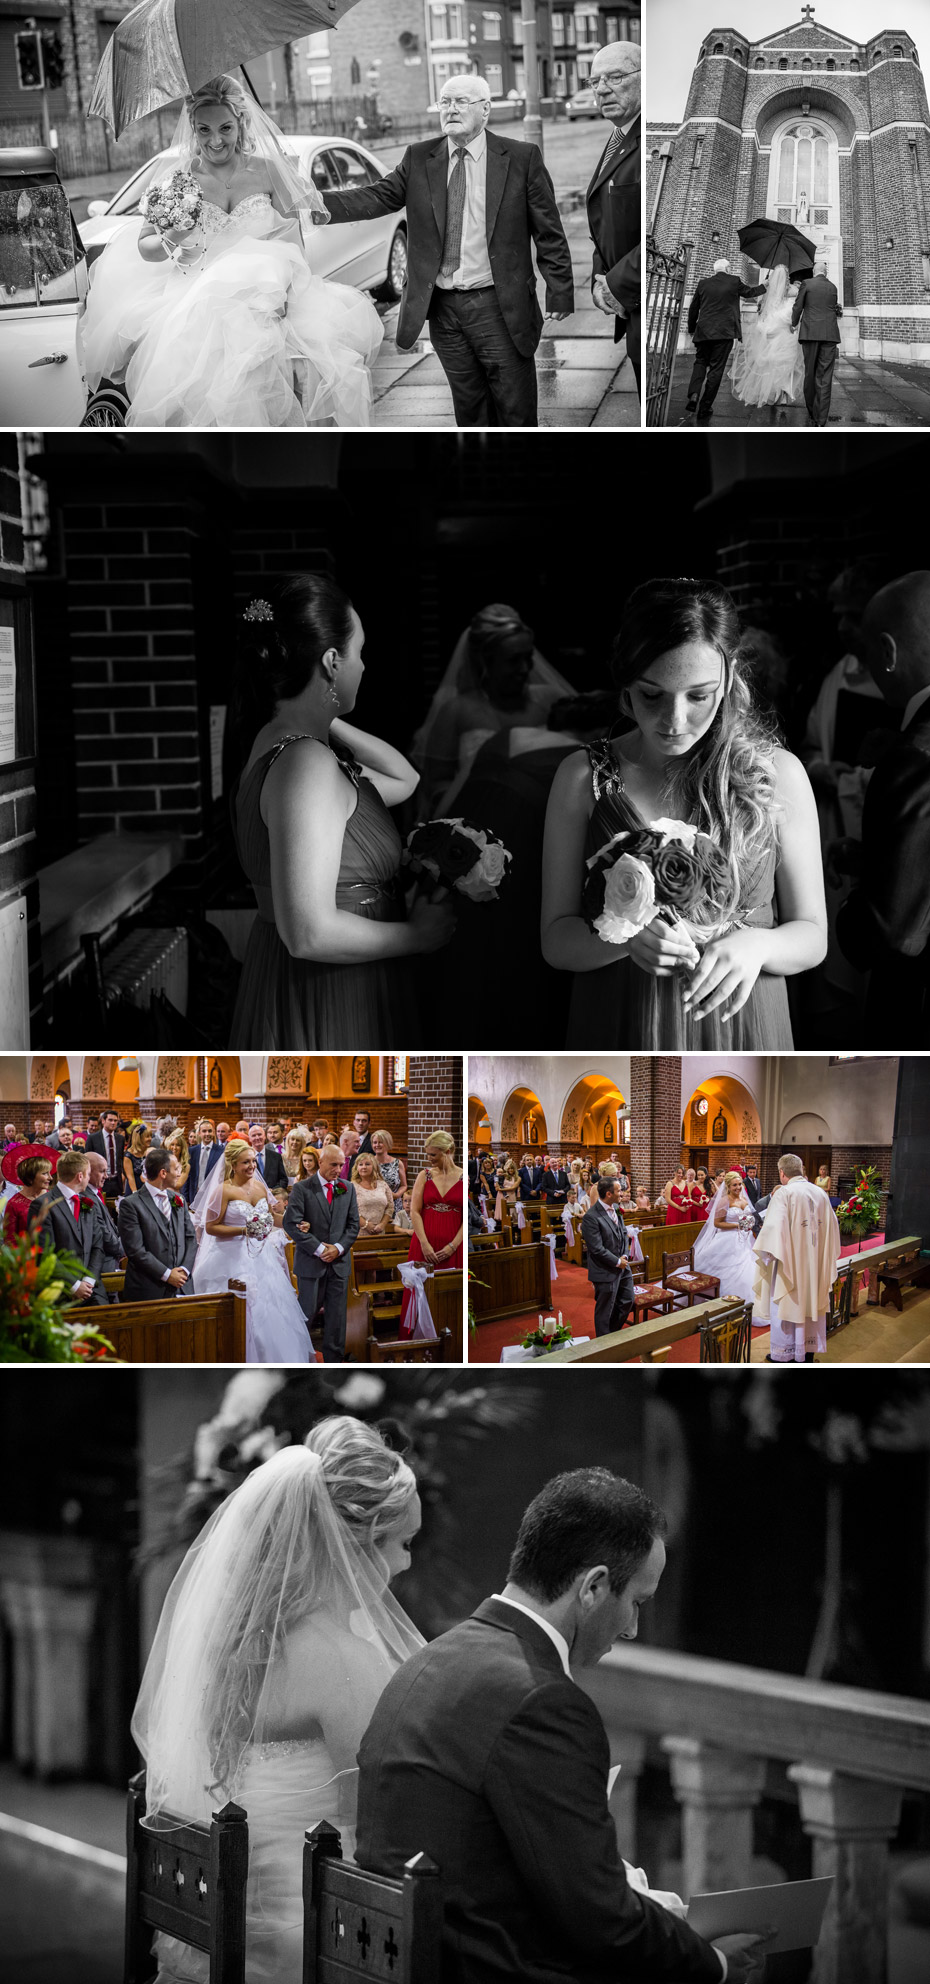 wedding-photographs-crowne-plaza-speke-liverpool-005